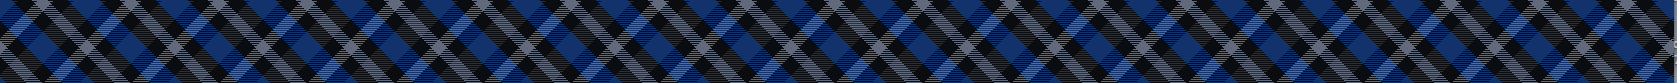 Dark Blue Tartan Band